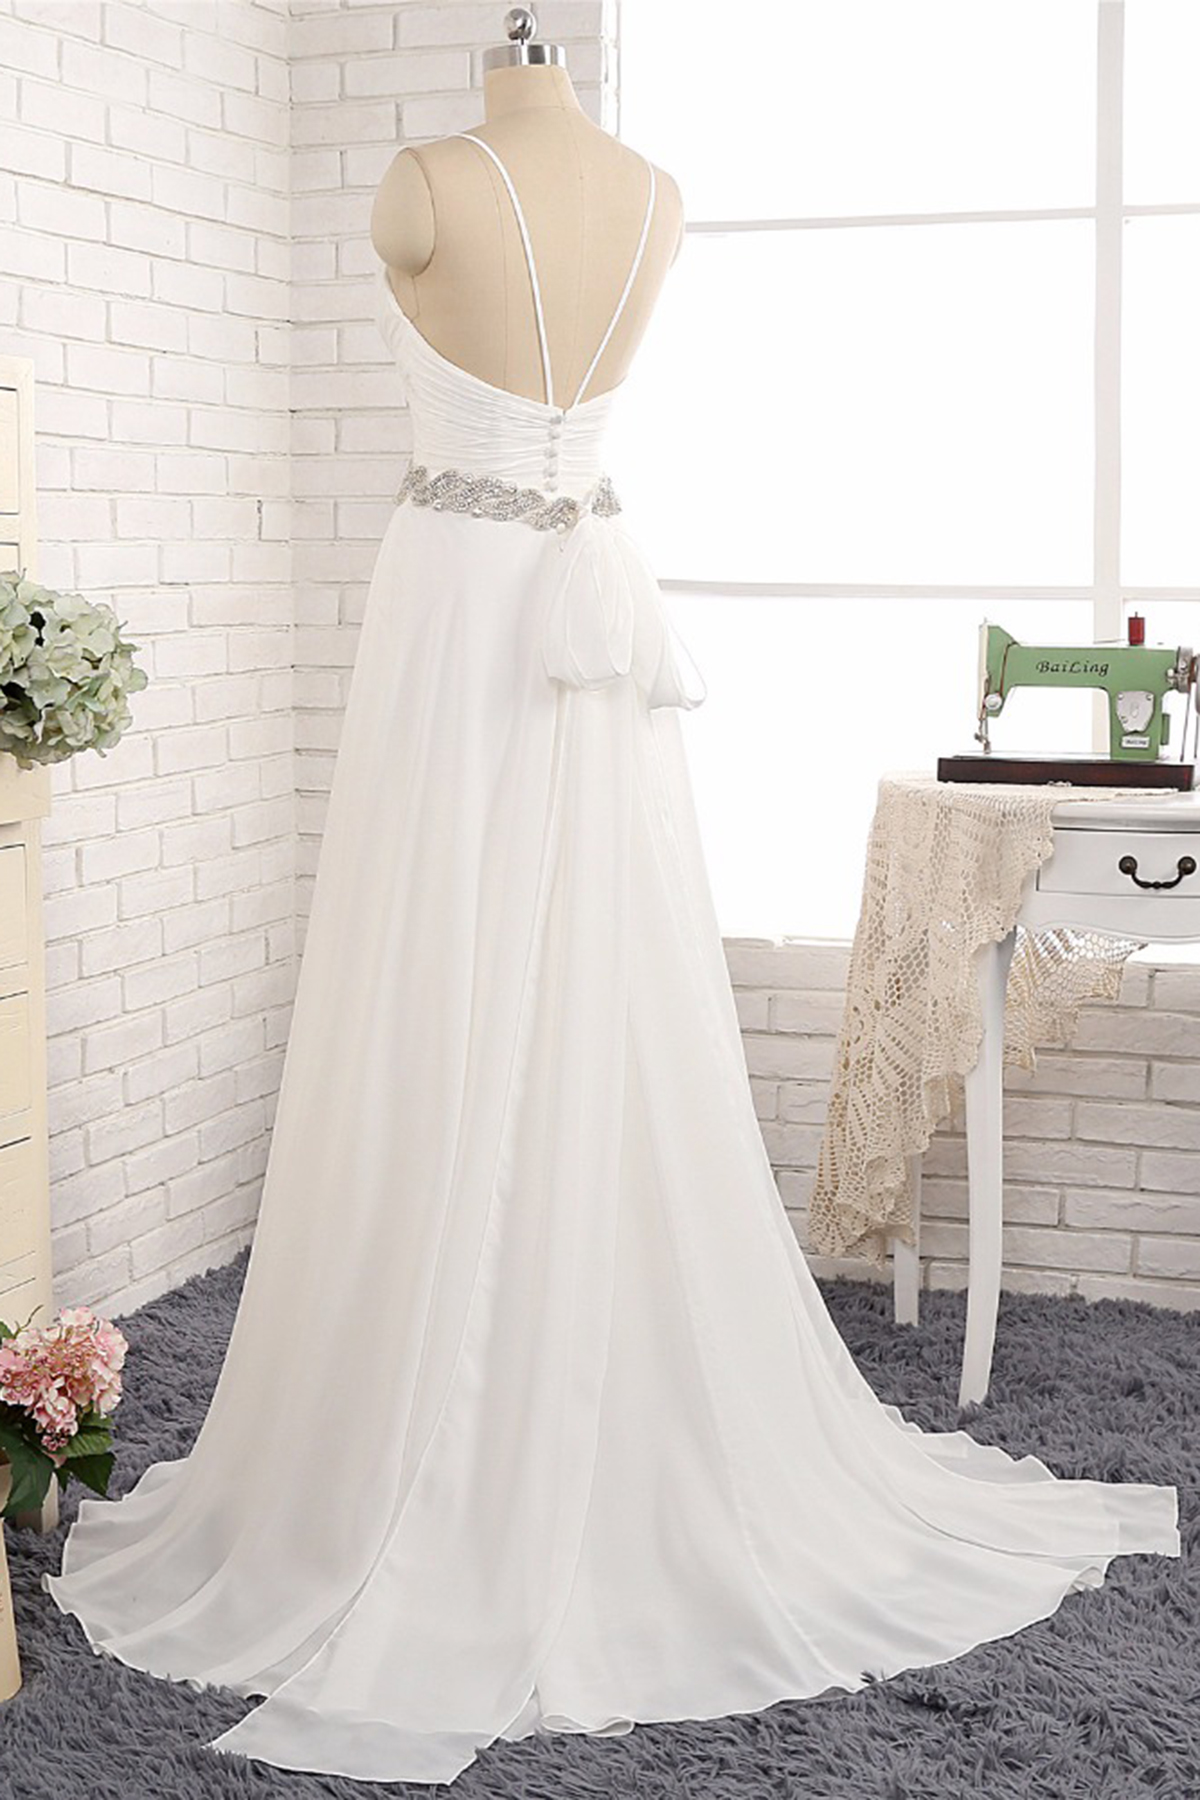 New Backless White Chiffon Long Wedding Gown, Long Beaded Belt Prom Dress    Thumbnail 1 ...